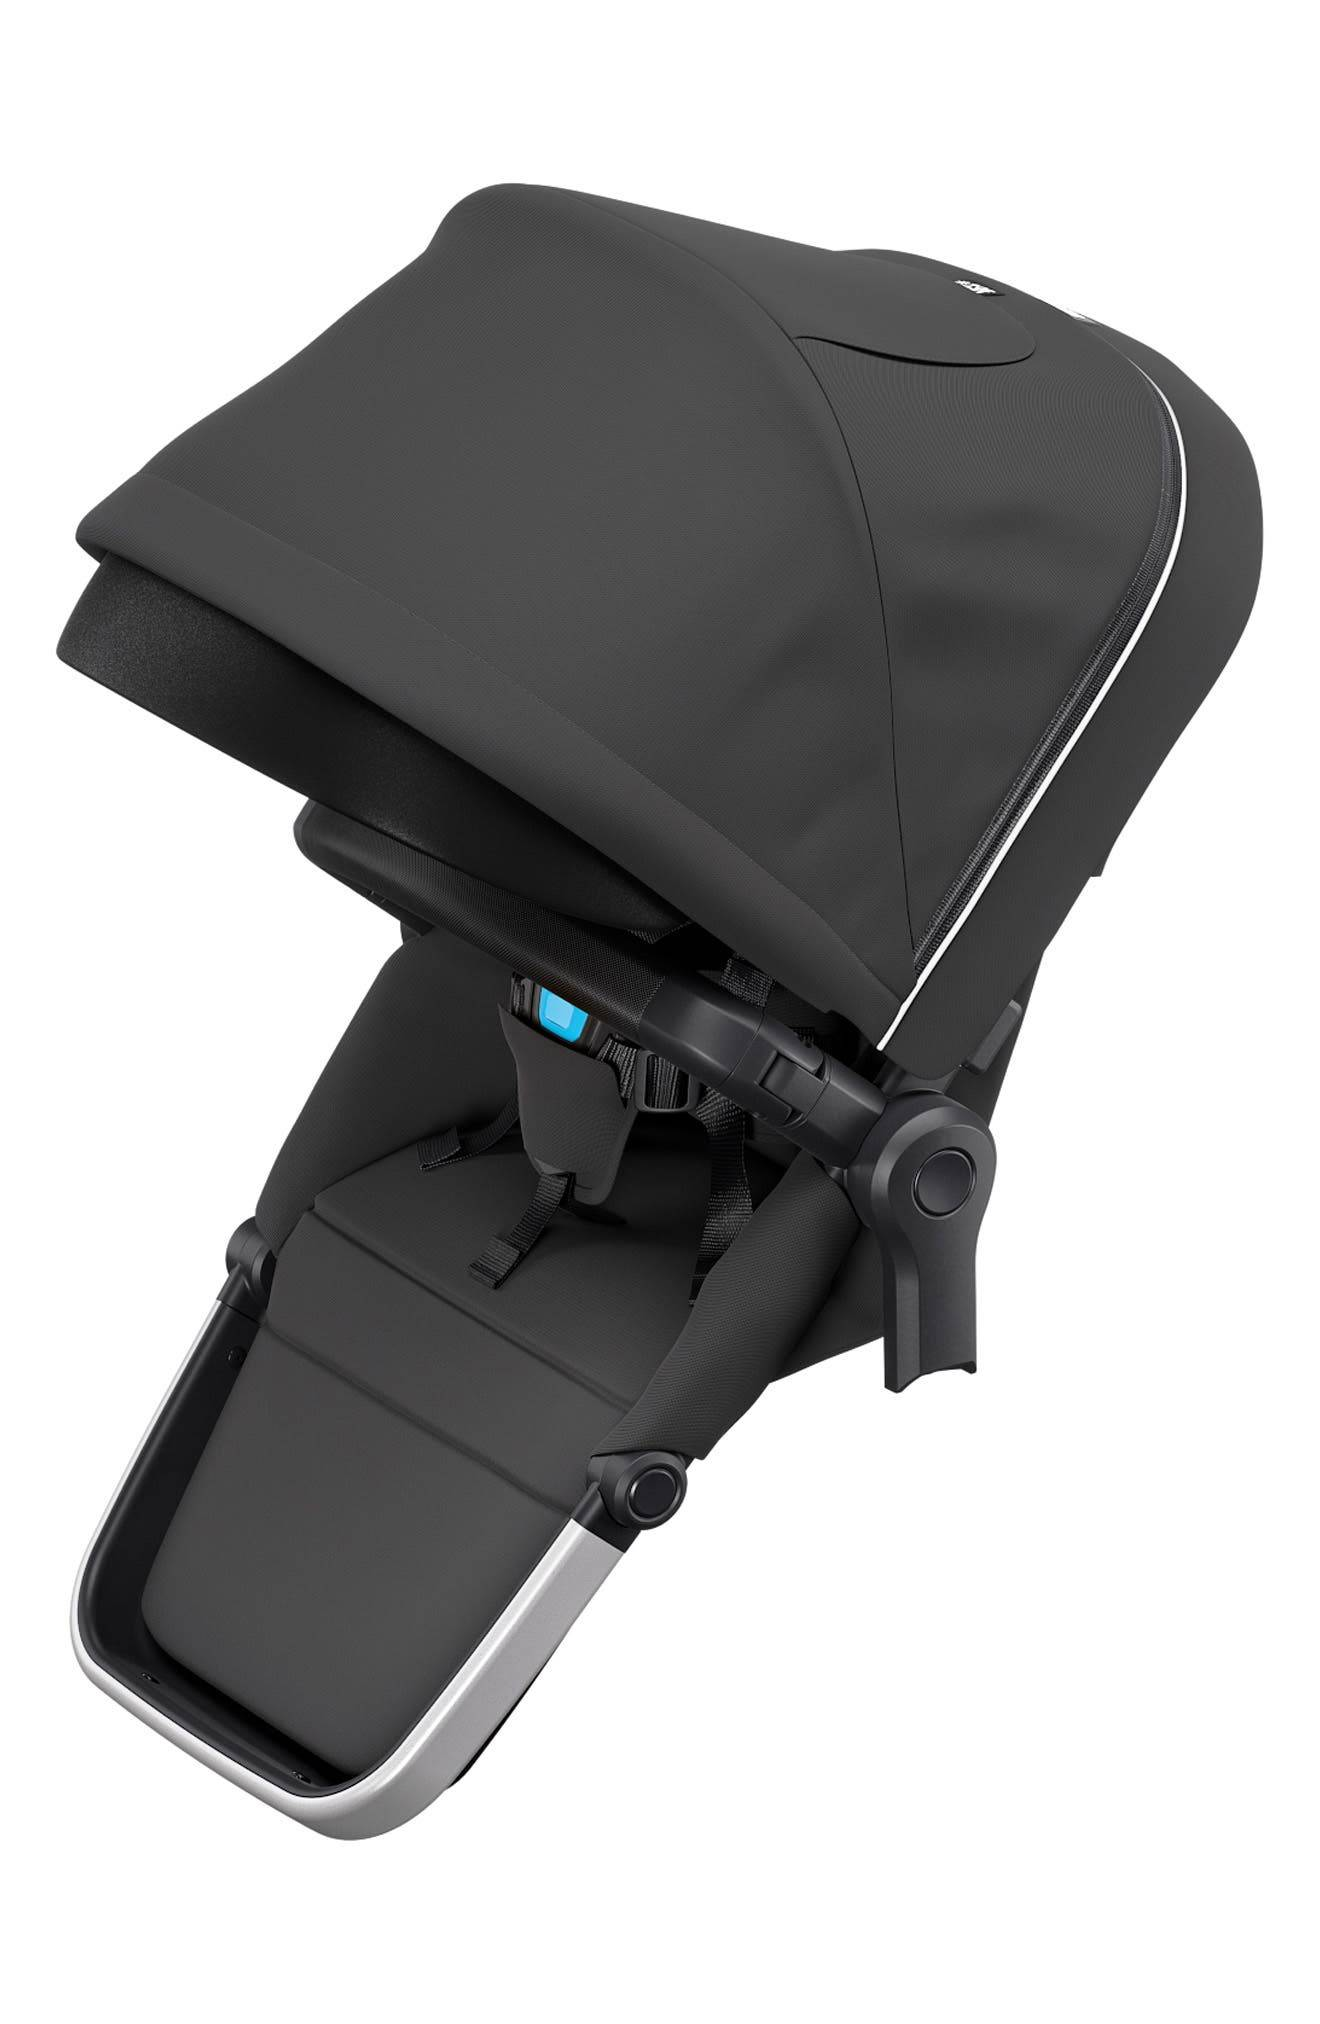 Thule Infant Thule Sibling Seat Accessory For Thule Sleek Stroller, Size One Size - Grey